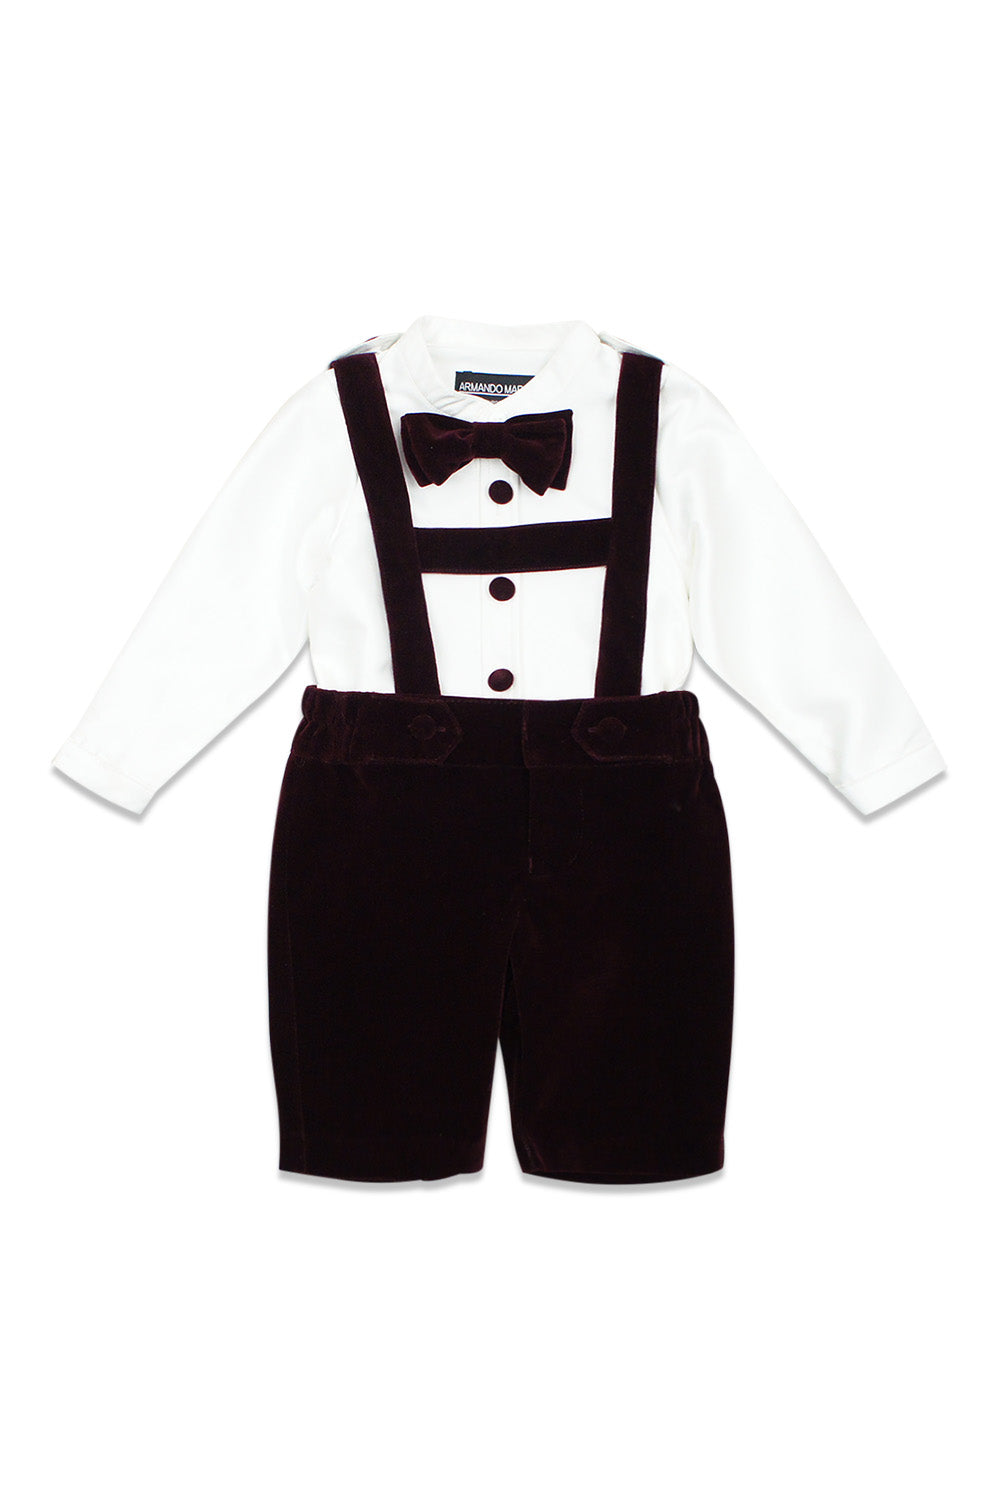 Armando Martillo Burgundy Two Piece Velour Suspenders Set